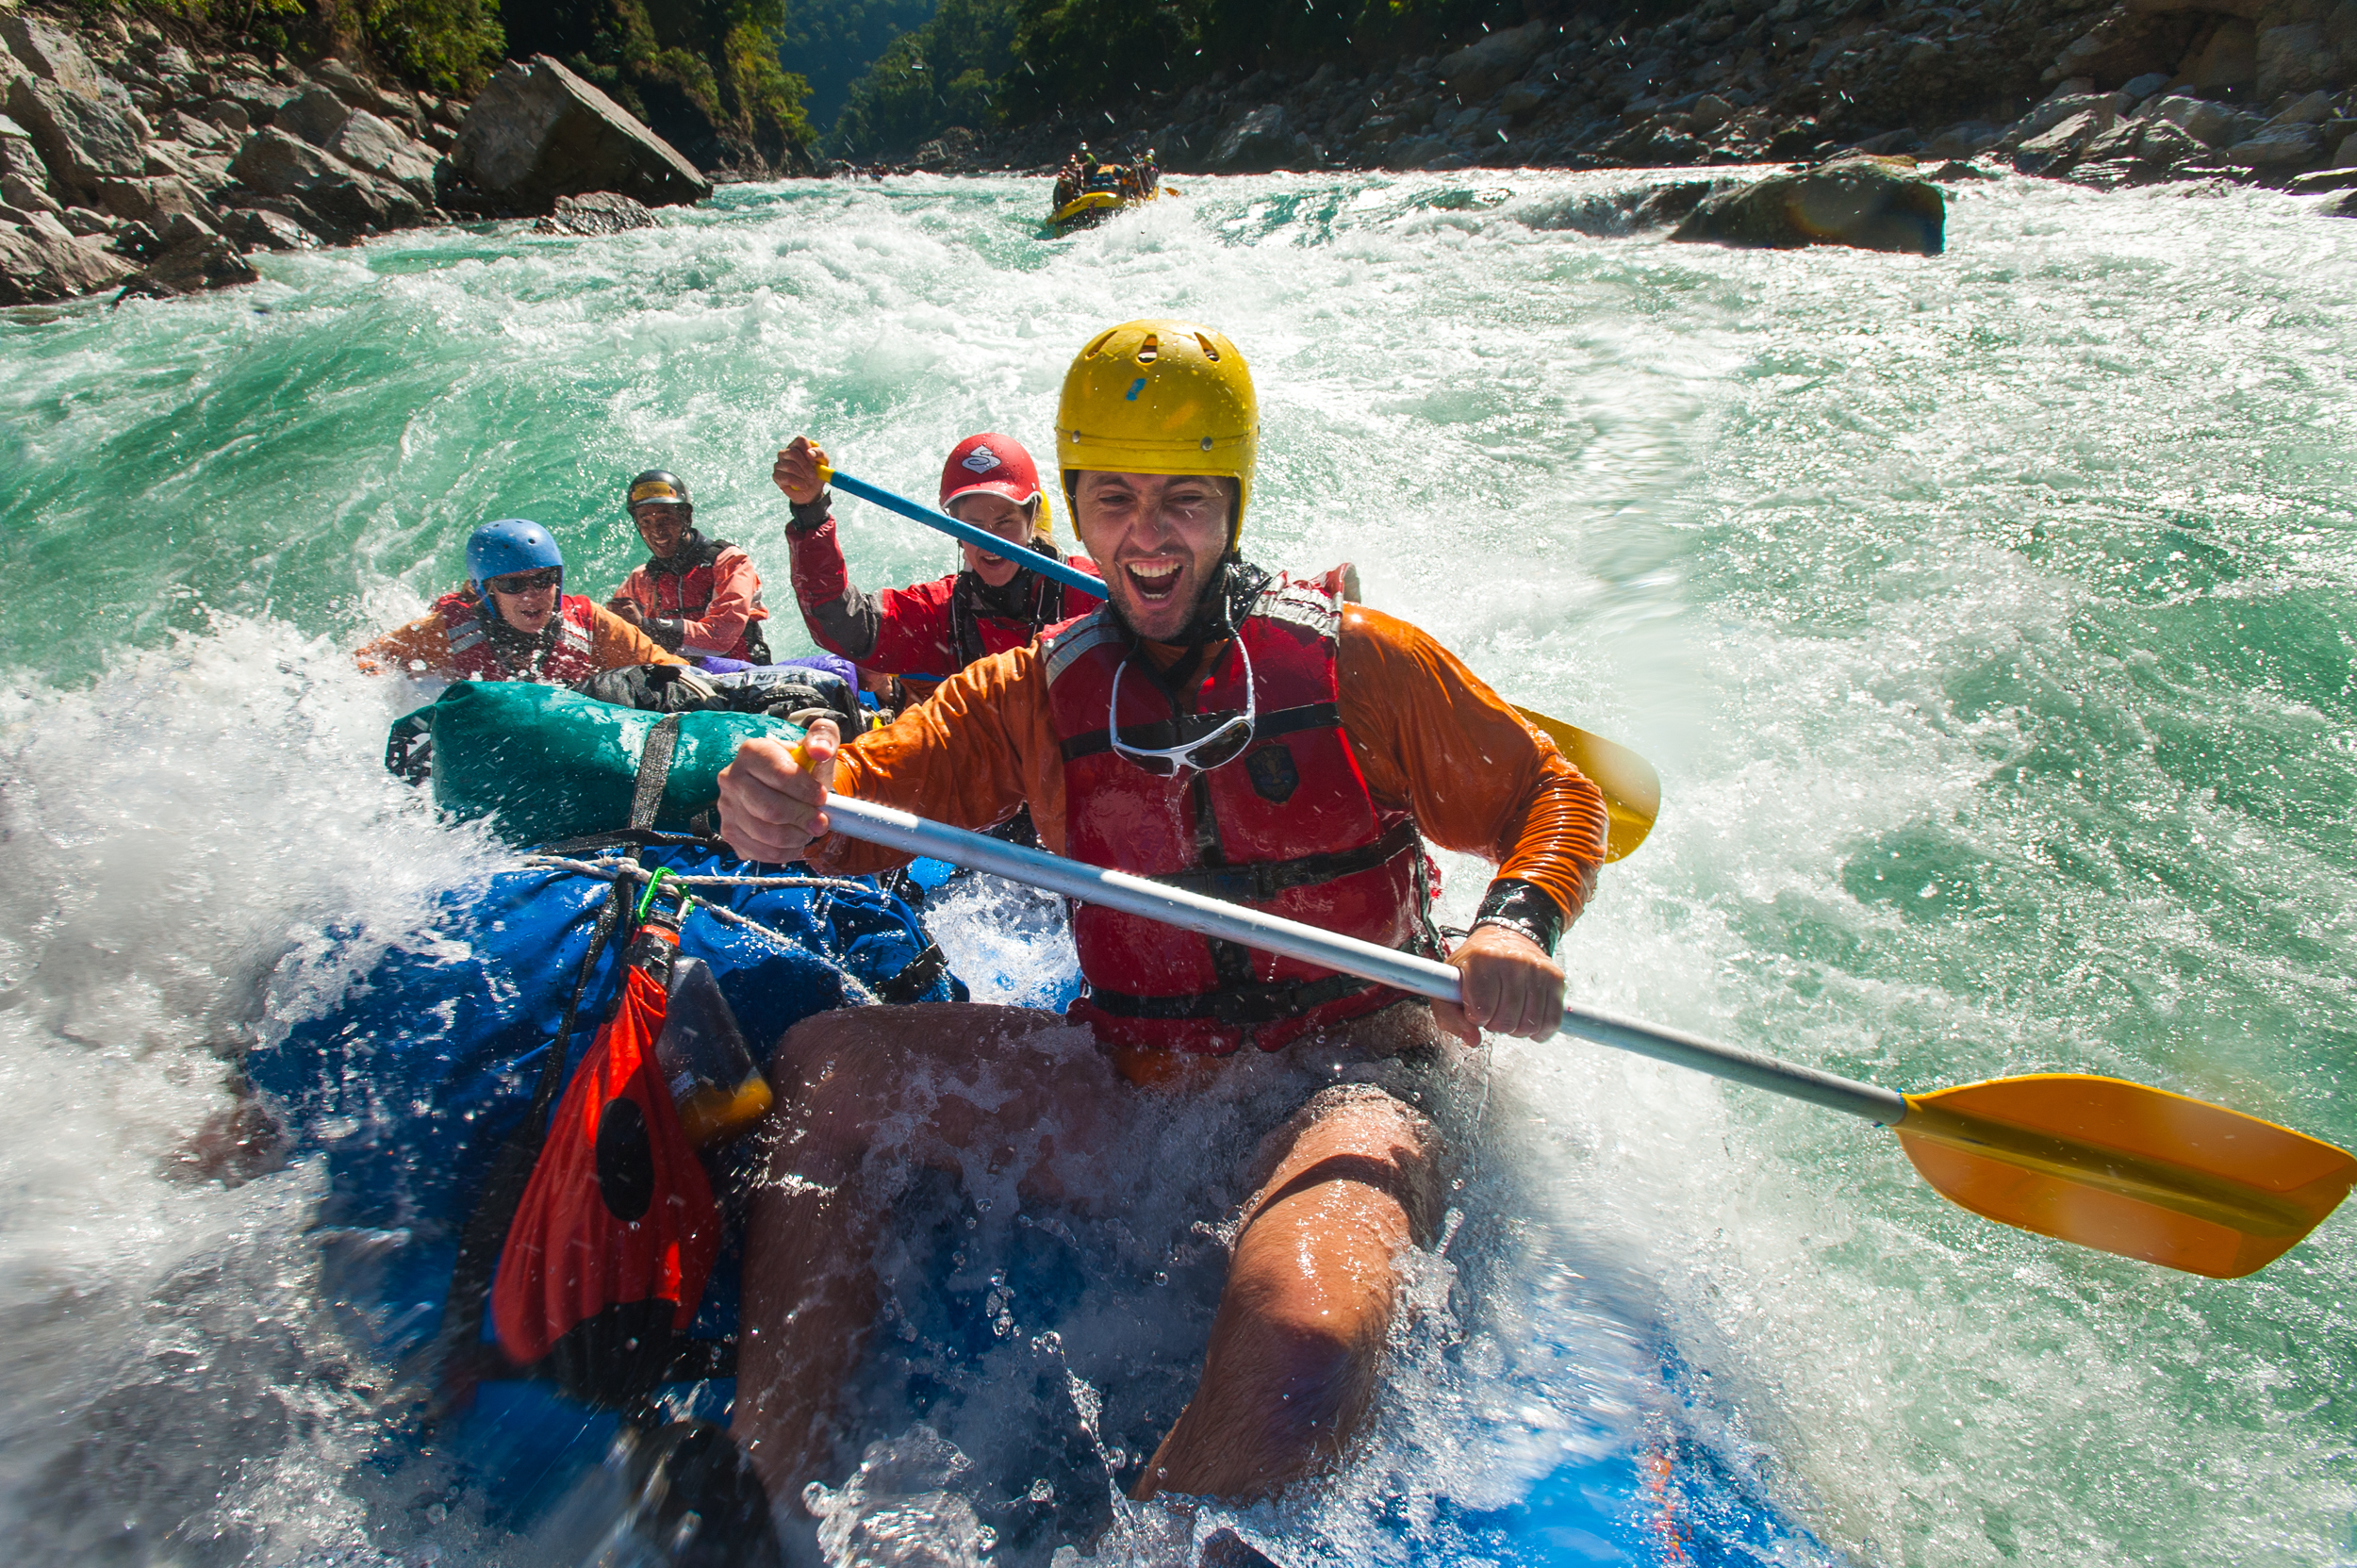 THE PEACE AND THE POWER – The Karnali runs through some of Nepal's most serene scenery, but its huge volume of water won't disappoint adrenaline junkies either.